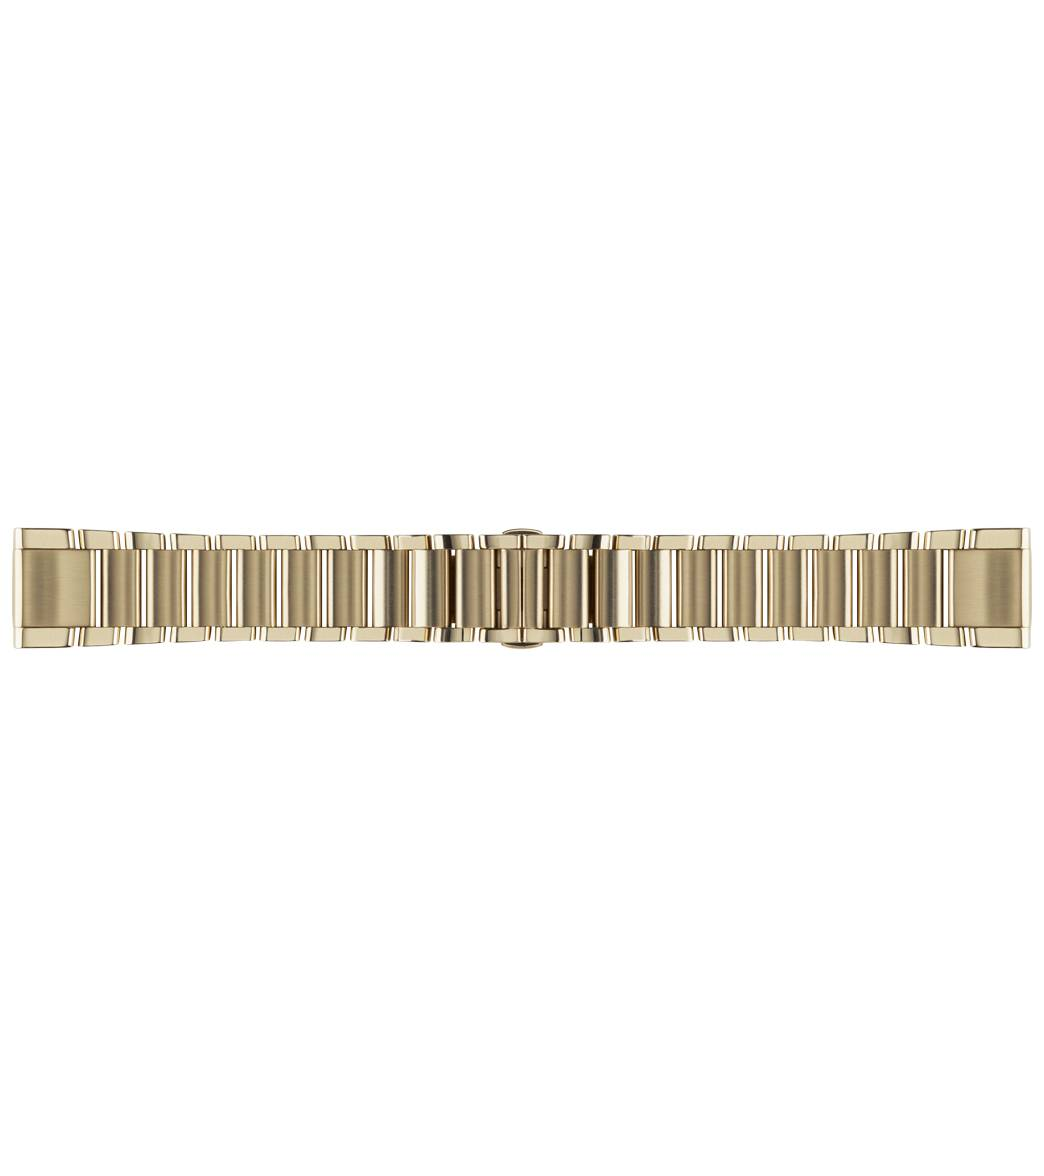 Garmin Fenix 5S Quick Fit Bands Accessory Band - Champagne Stainless Steel 20 Mm - Swimoutlet.com